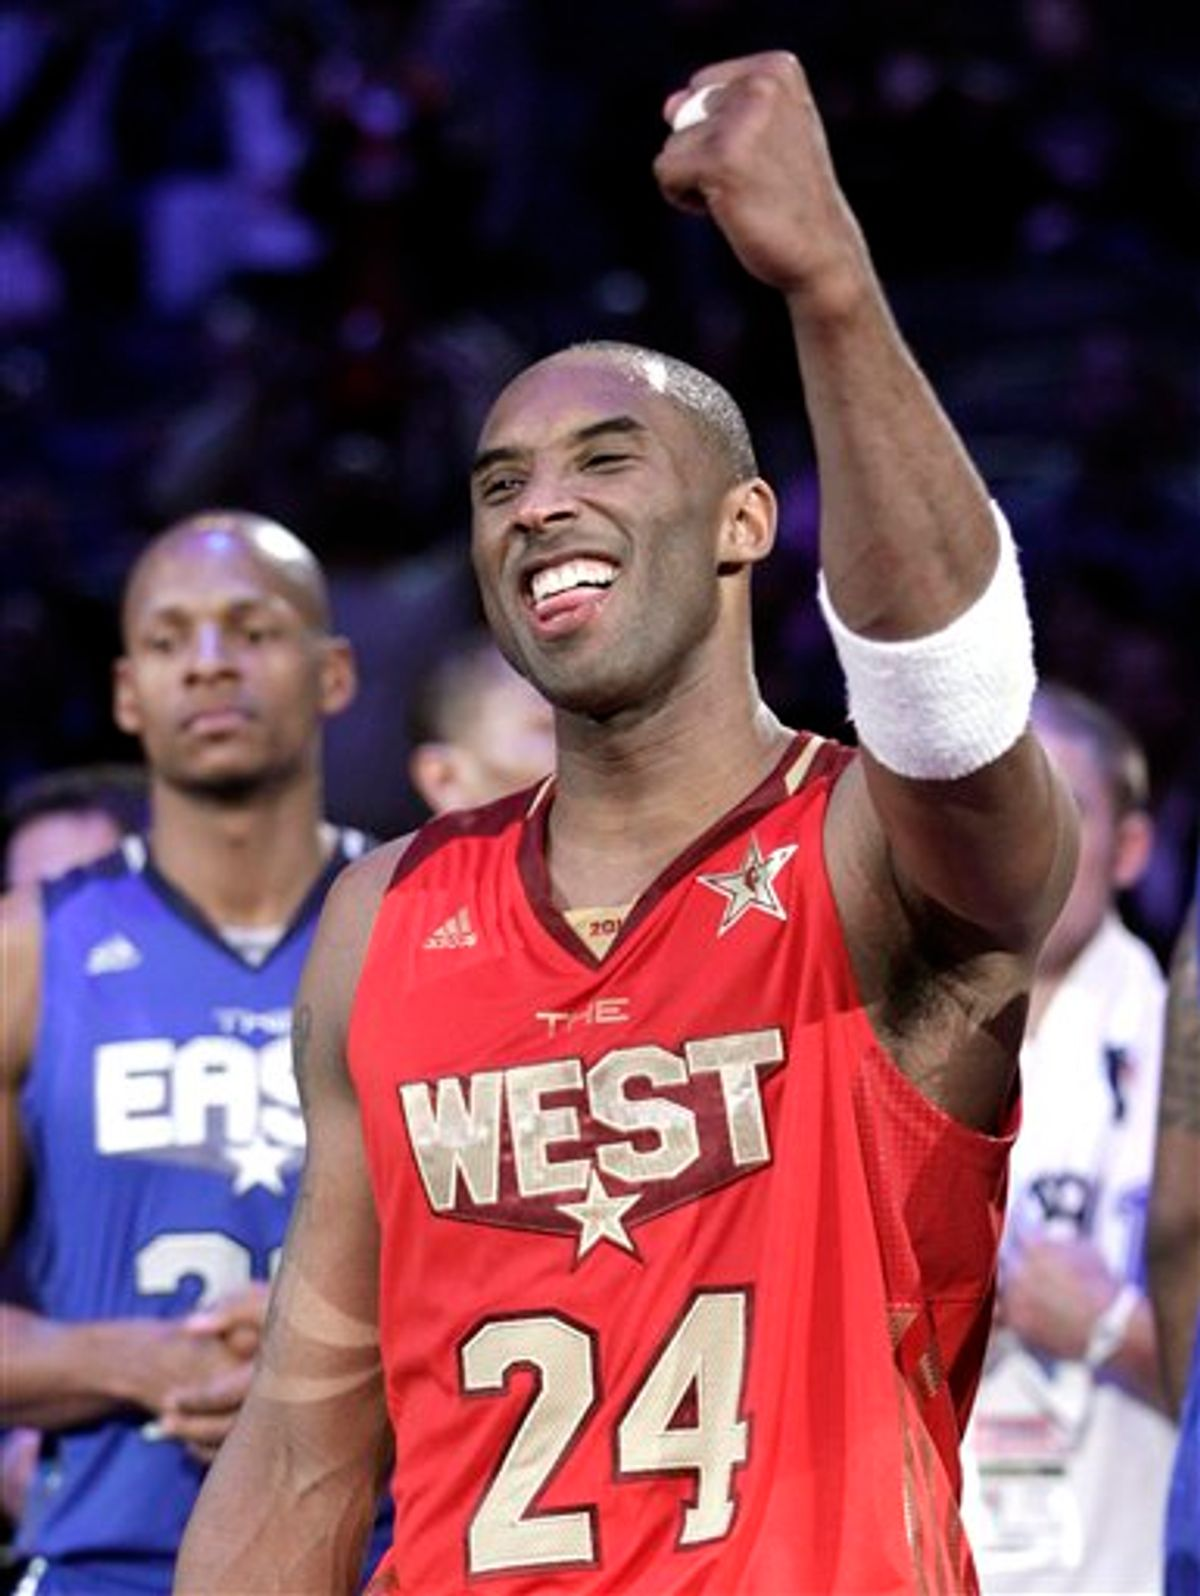 West's Kobe Bryant celebrates his team's 148-143 win against the East All-Star team after the NBA basketball All-Star Game in Los Angeles, Sunday, Feb. 20, 2011. (AP Photo/Jae C. Hong)  (AP)